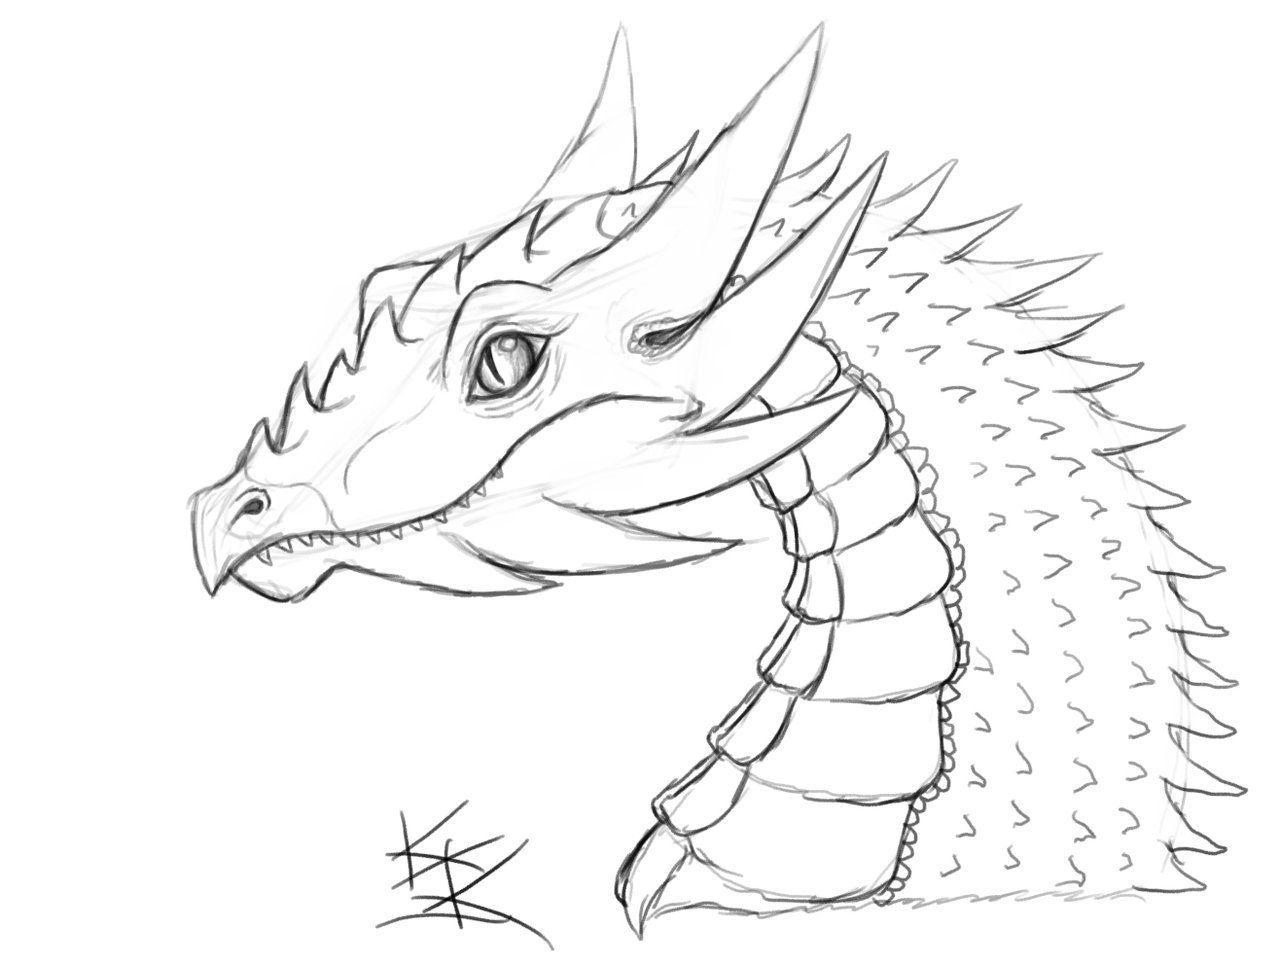 1280x965 Dragon Sketch by Techdrakonic on DeviantArt